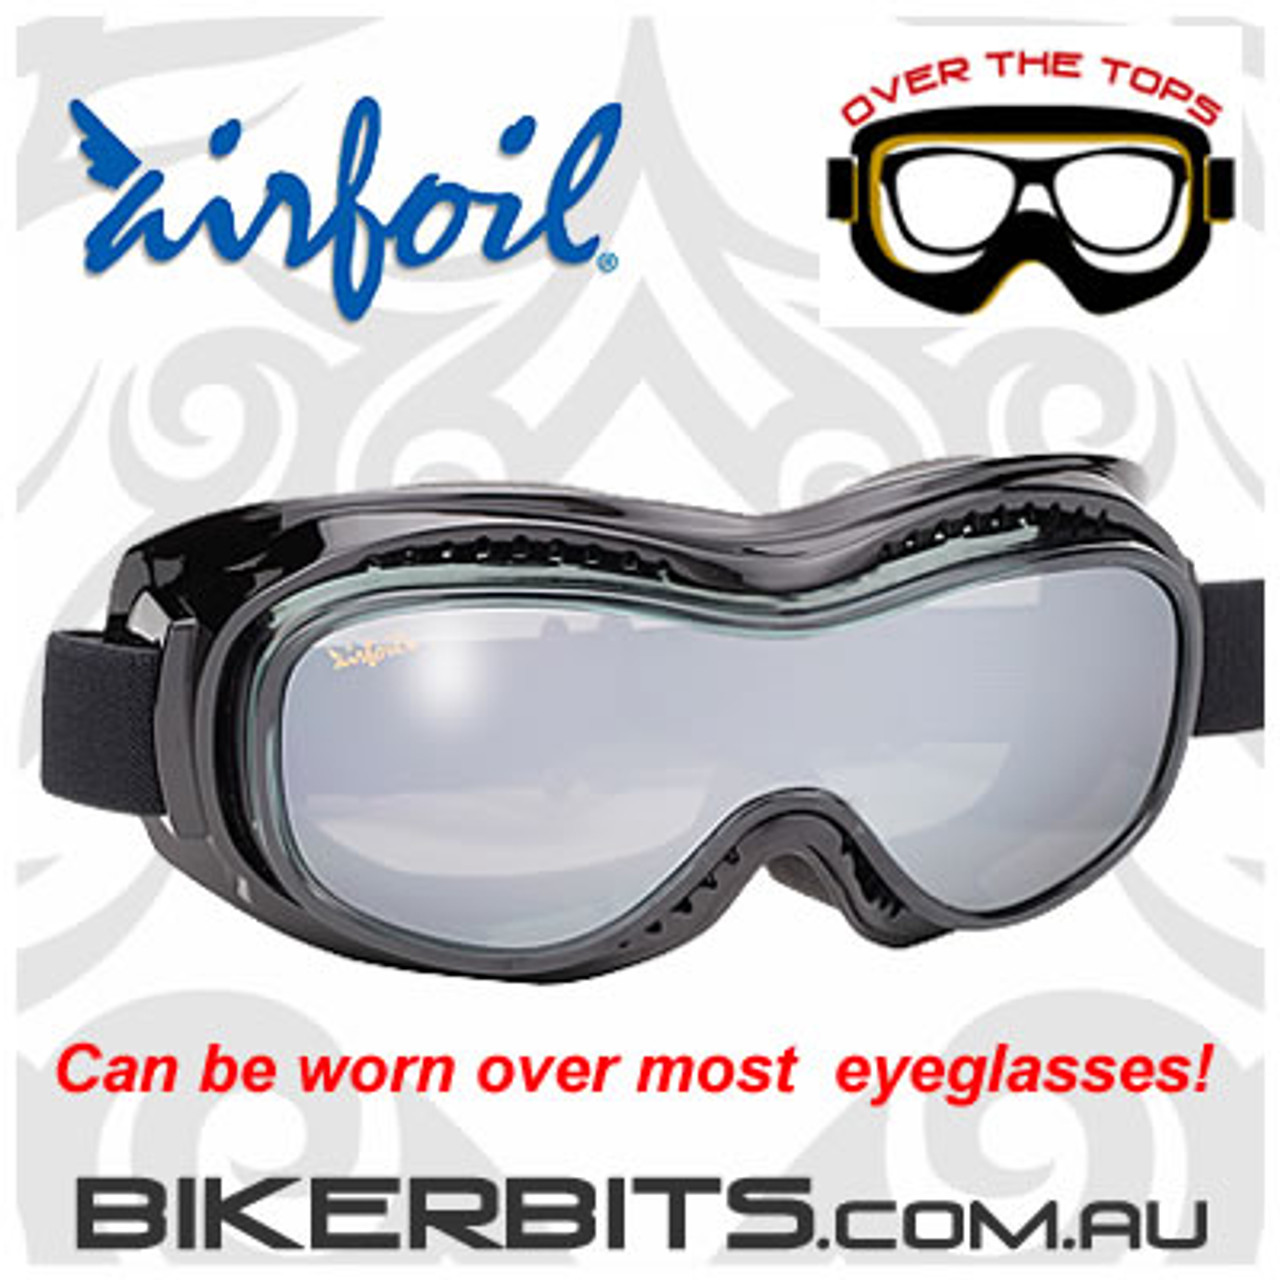 Motorcycle Goggles - Airfoils - 9300 - Smoke Silver